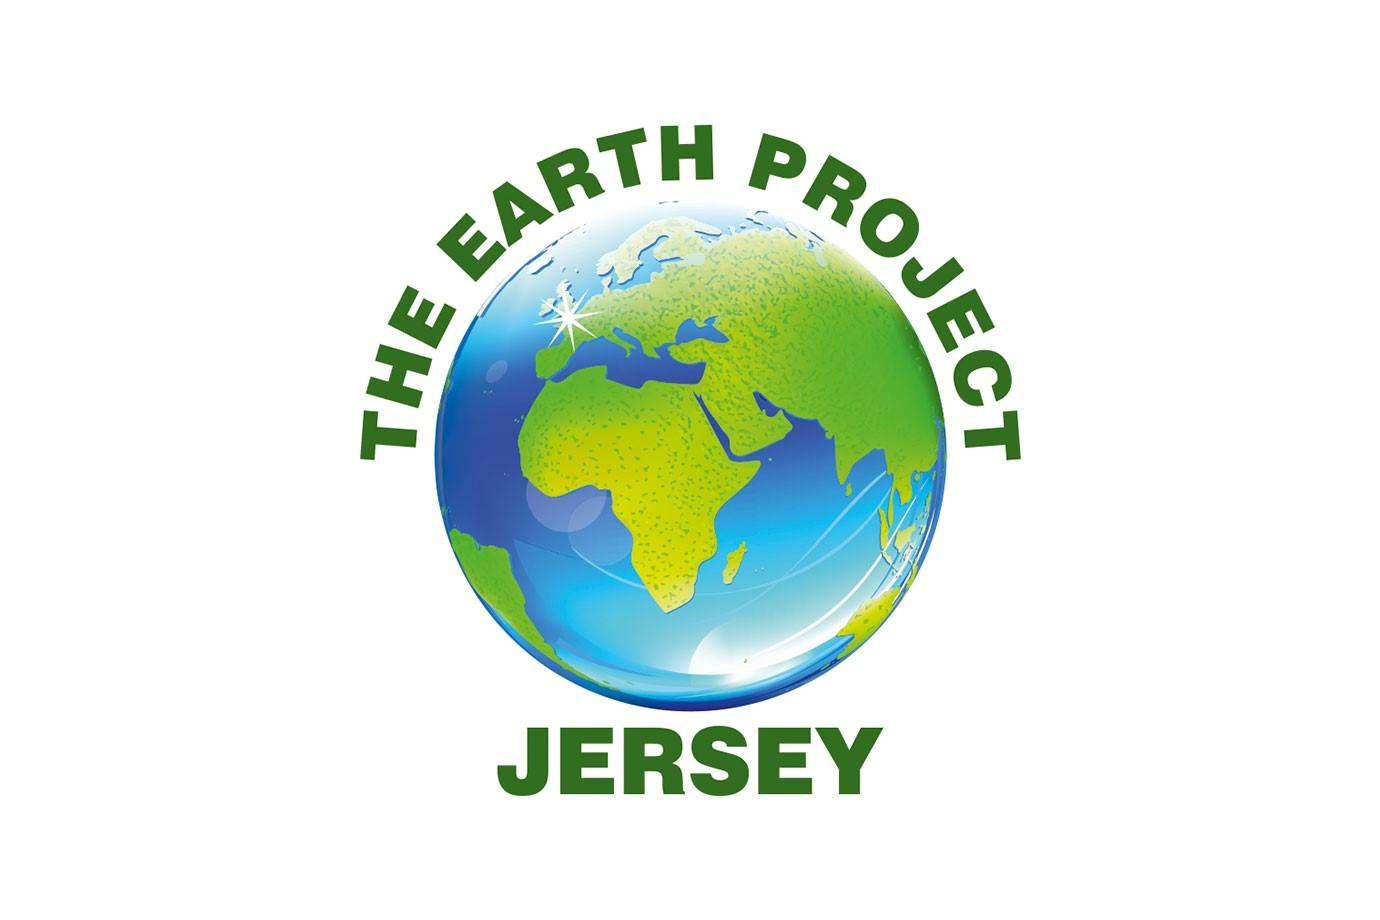 Earth Project Jersey logo